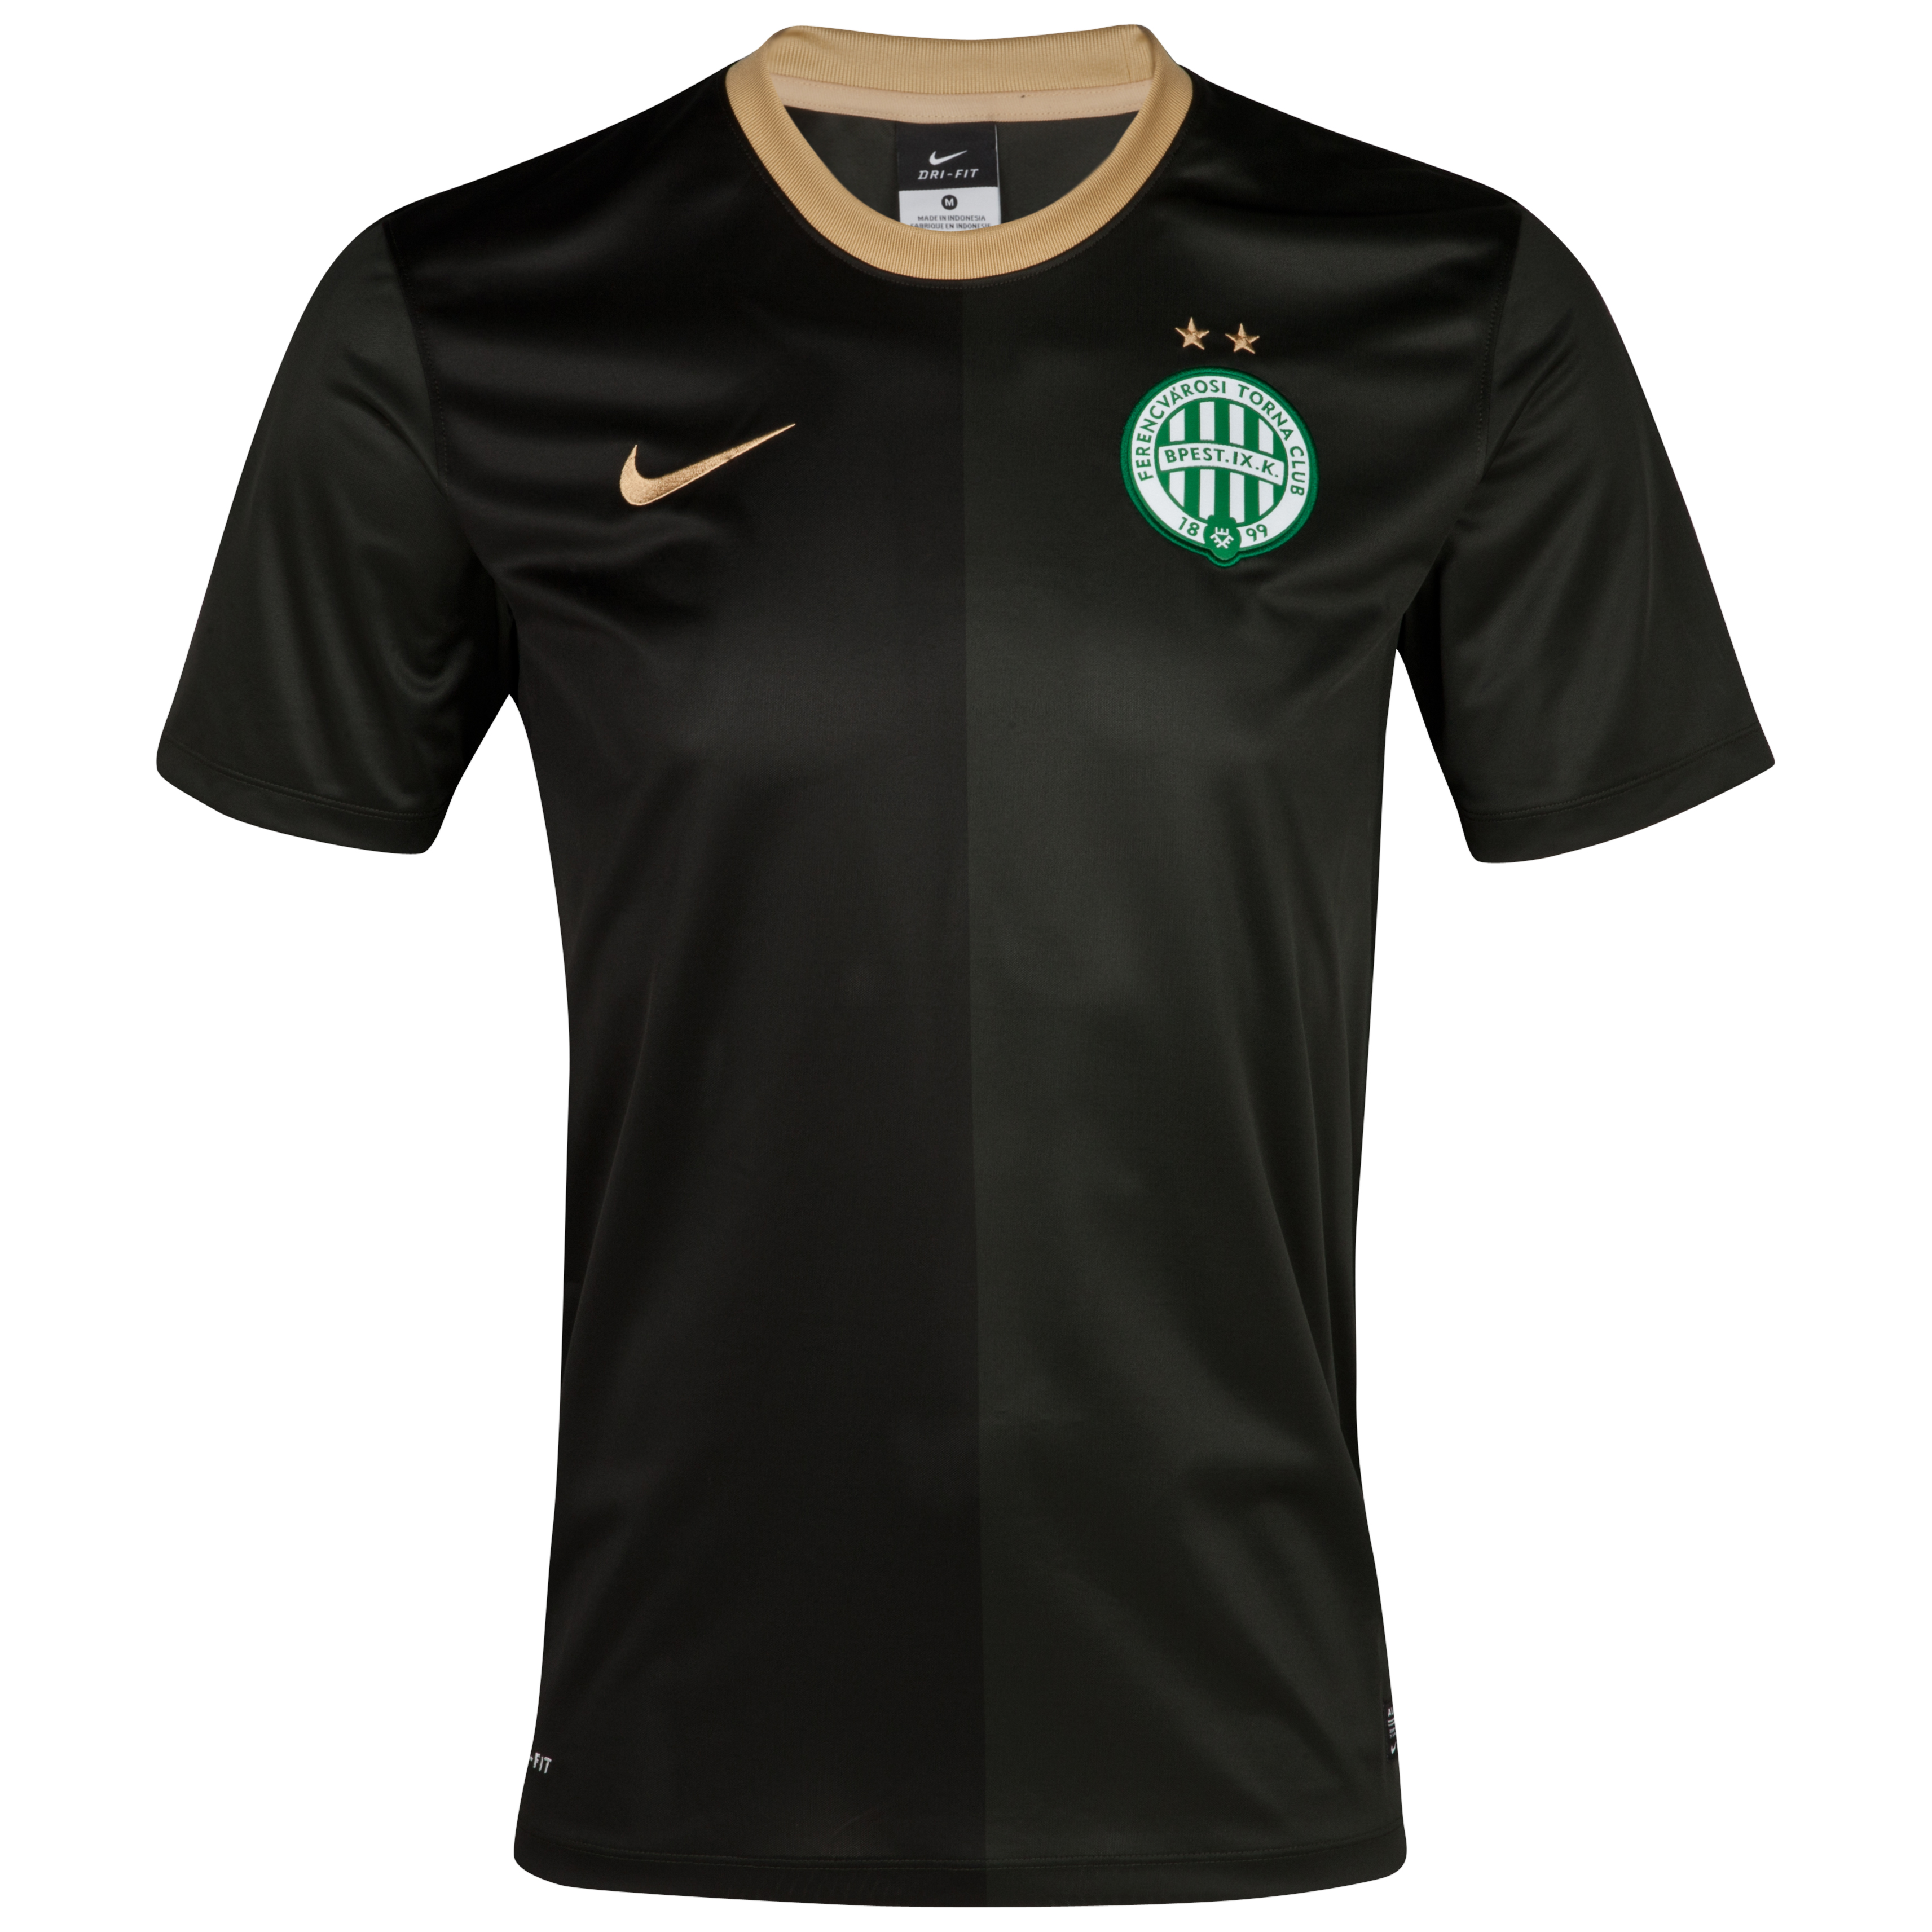 Ferencvaros 2012/13 Away Stadium Shirt - Dark Army/Jersey Gold/Jersey Gold